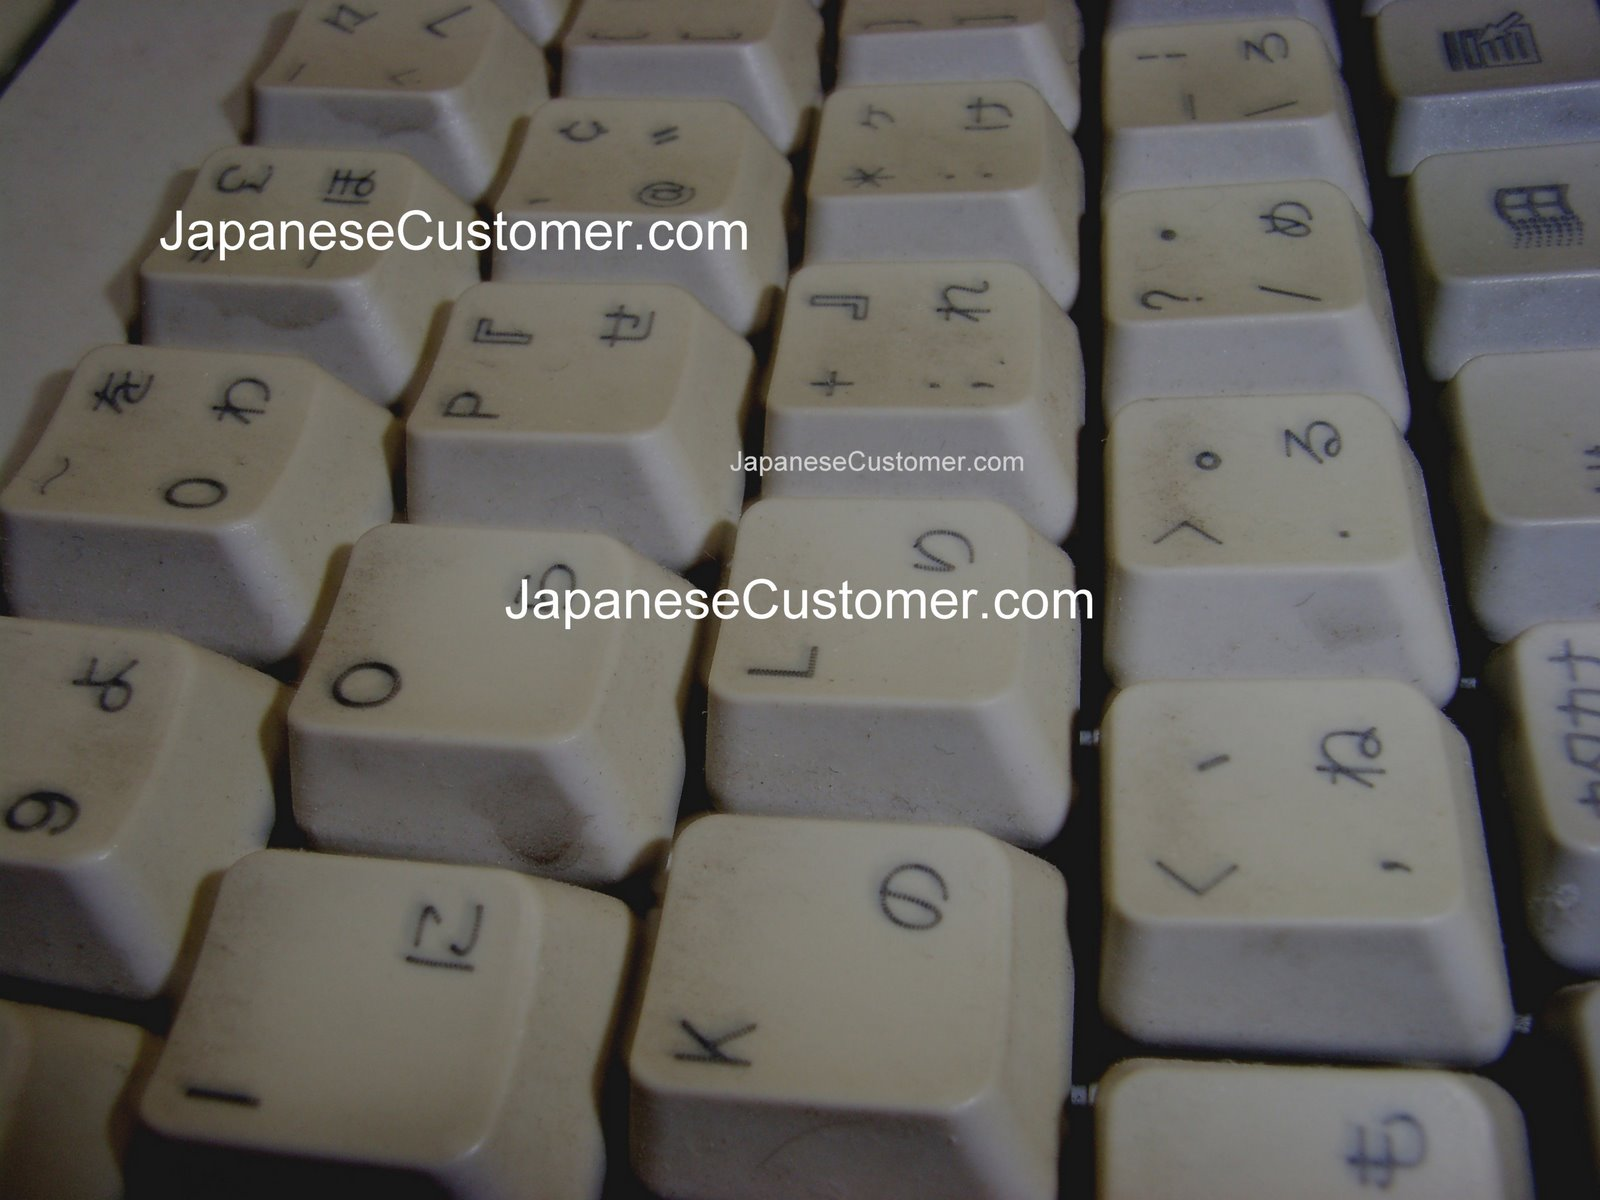 Japanese keyboard Copyright Peter Hanami 2010